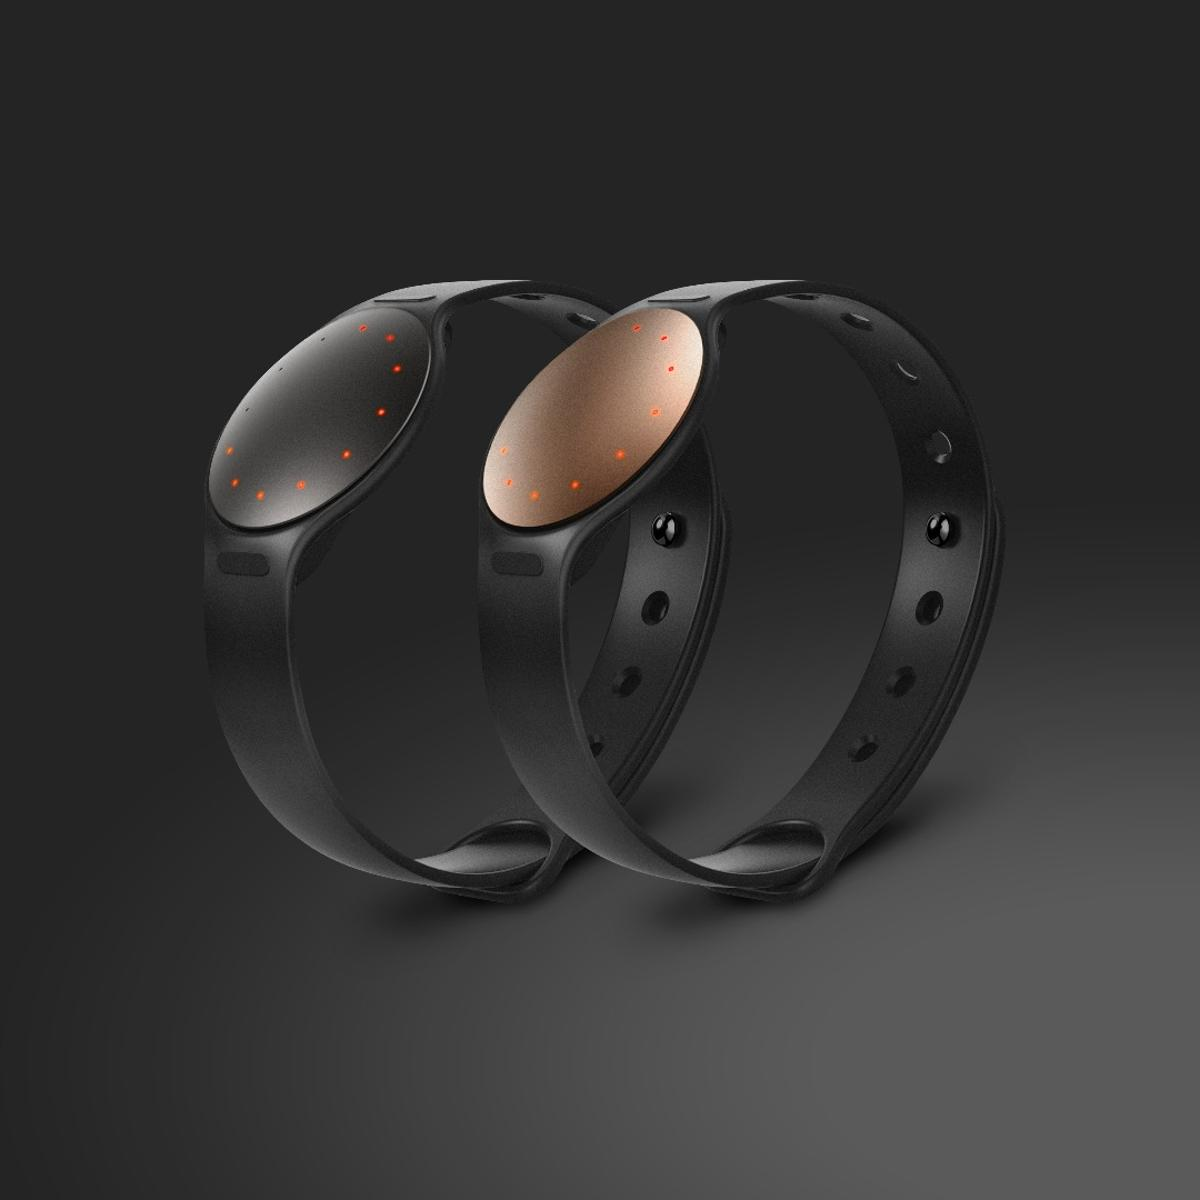 The Misfit Shine 2 can be worn with a wristband, clipped on to clothing or hung around the neck as a pendant